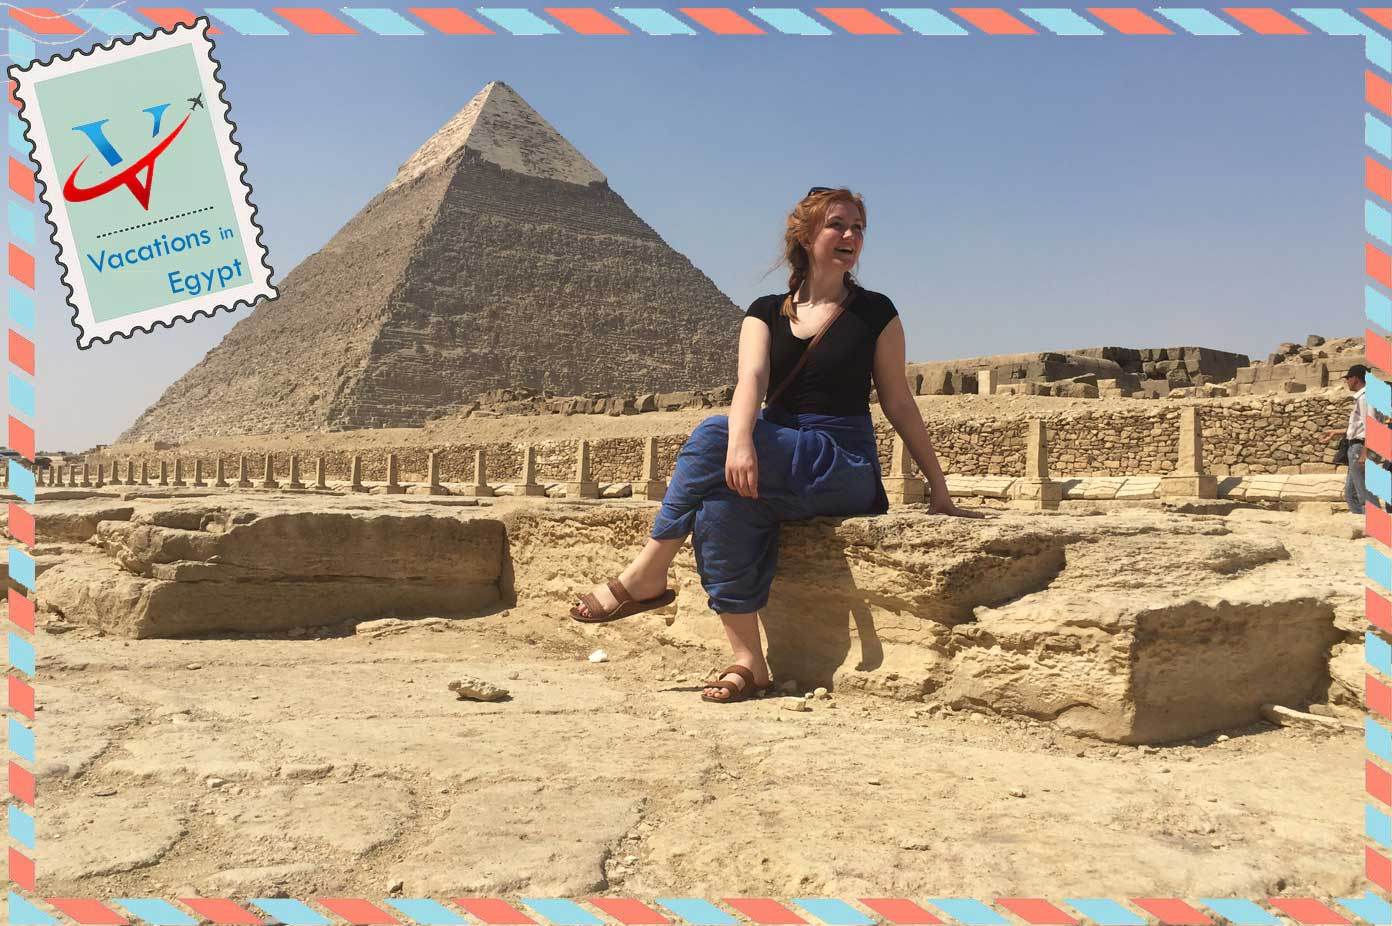 8 days in egypt - vacations in egypt